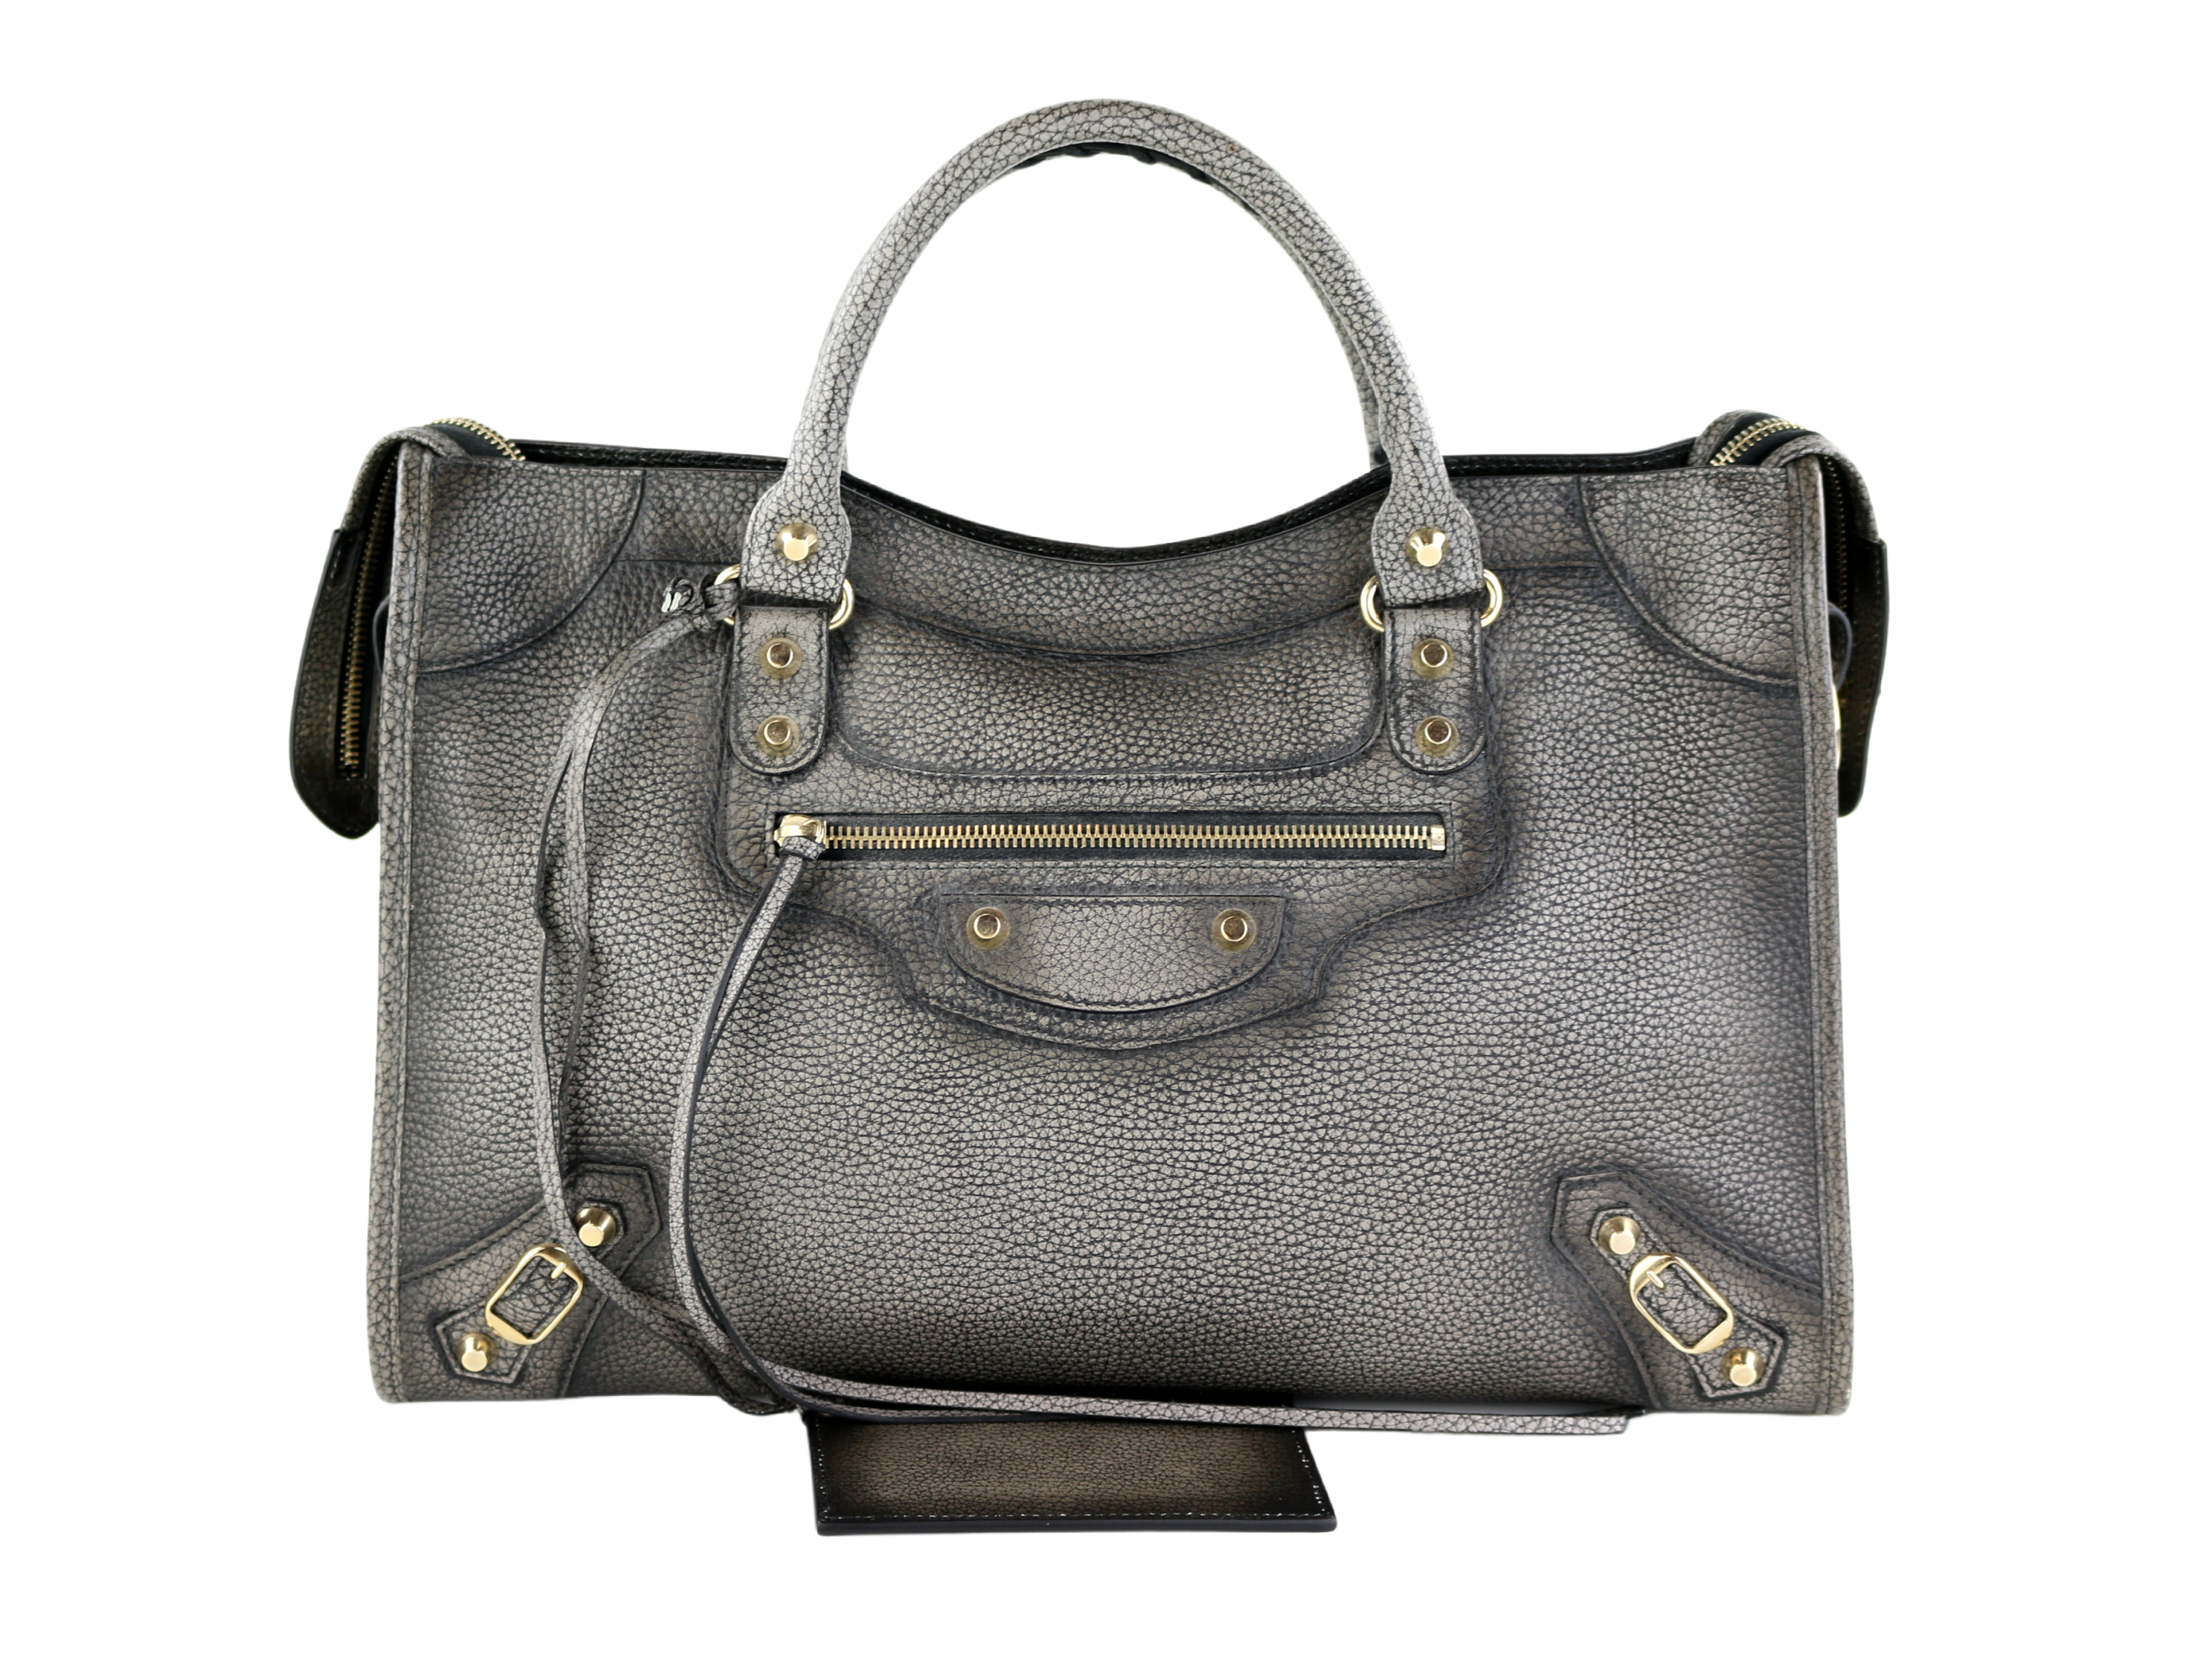 Bronze Hamilton City Bag